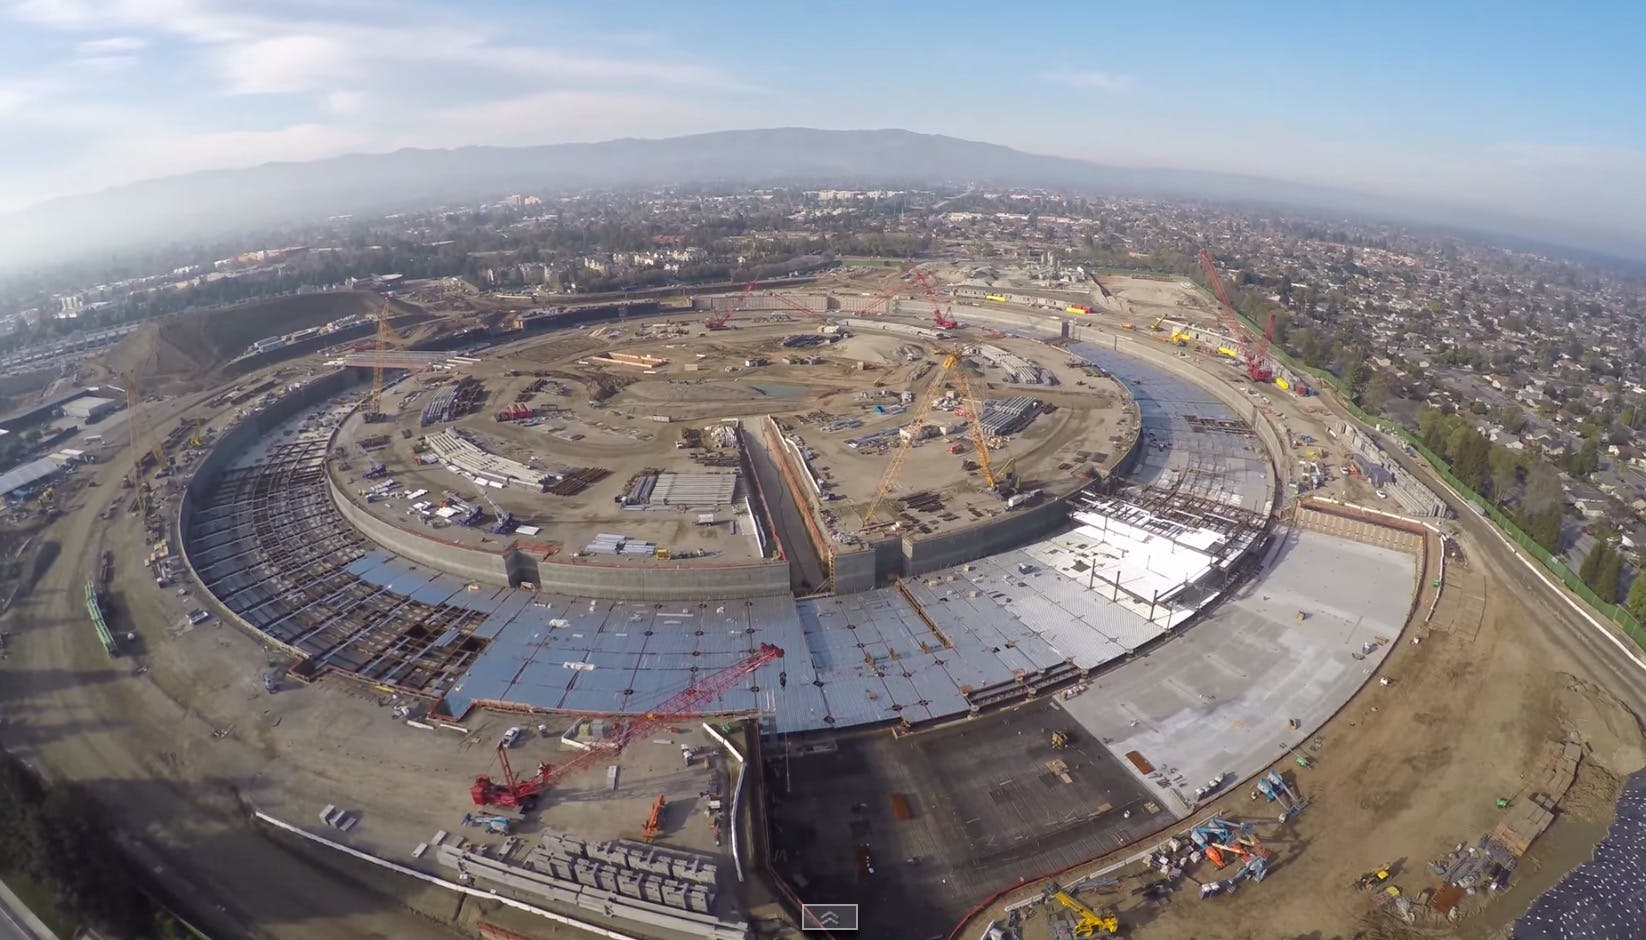 Drone footage shows the latest construction status of the Foster